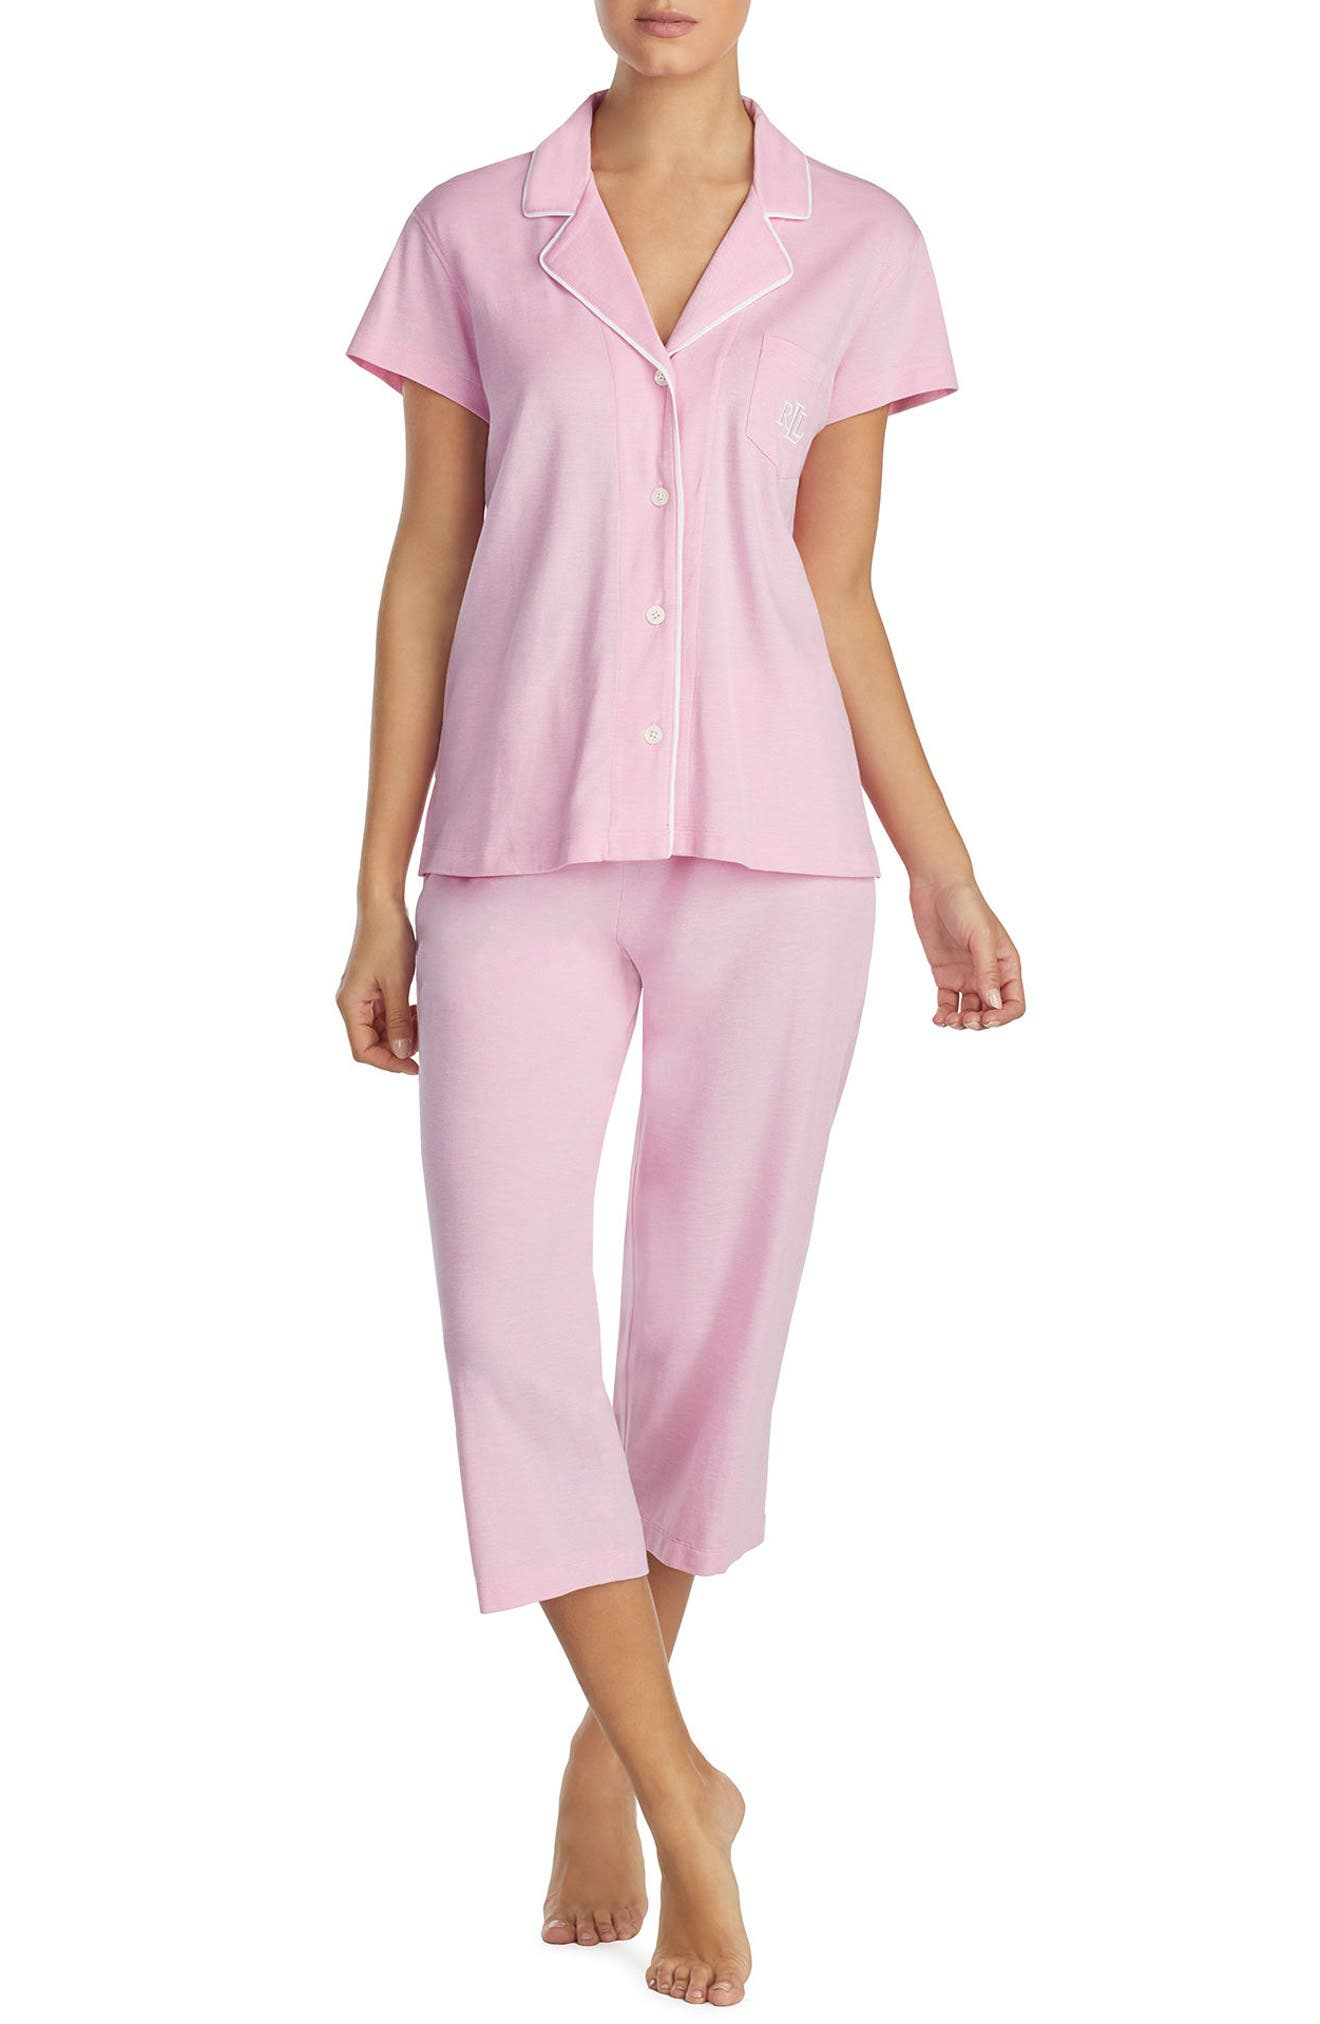 Knit Capri Pajamas,                             Main thumbnail 1, color,                             Pink